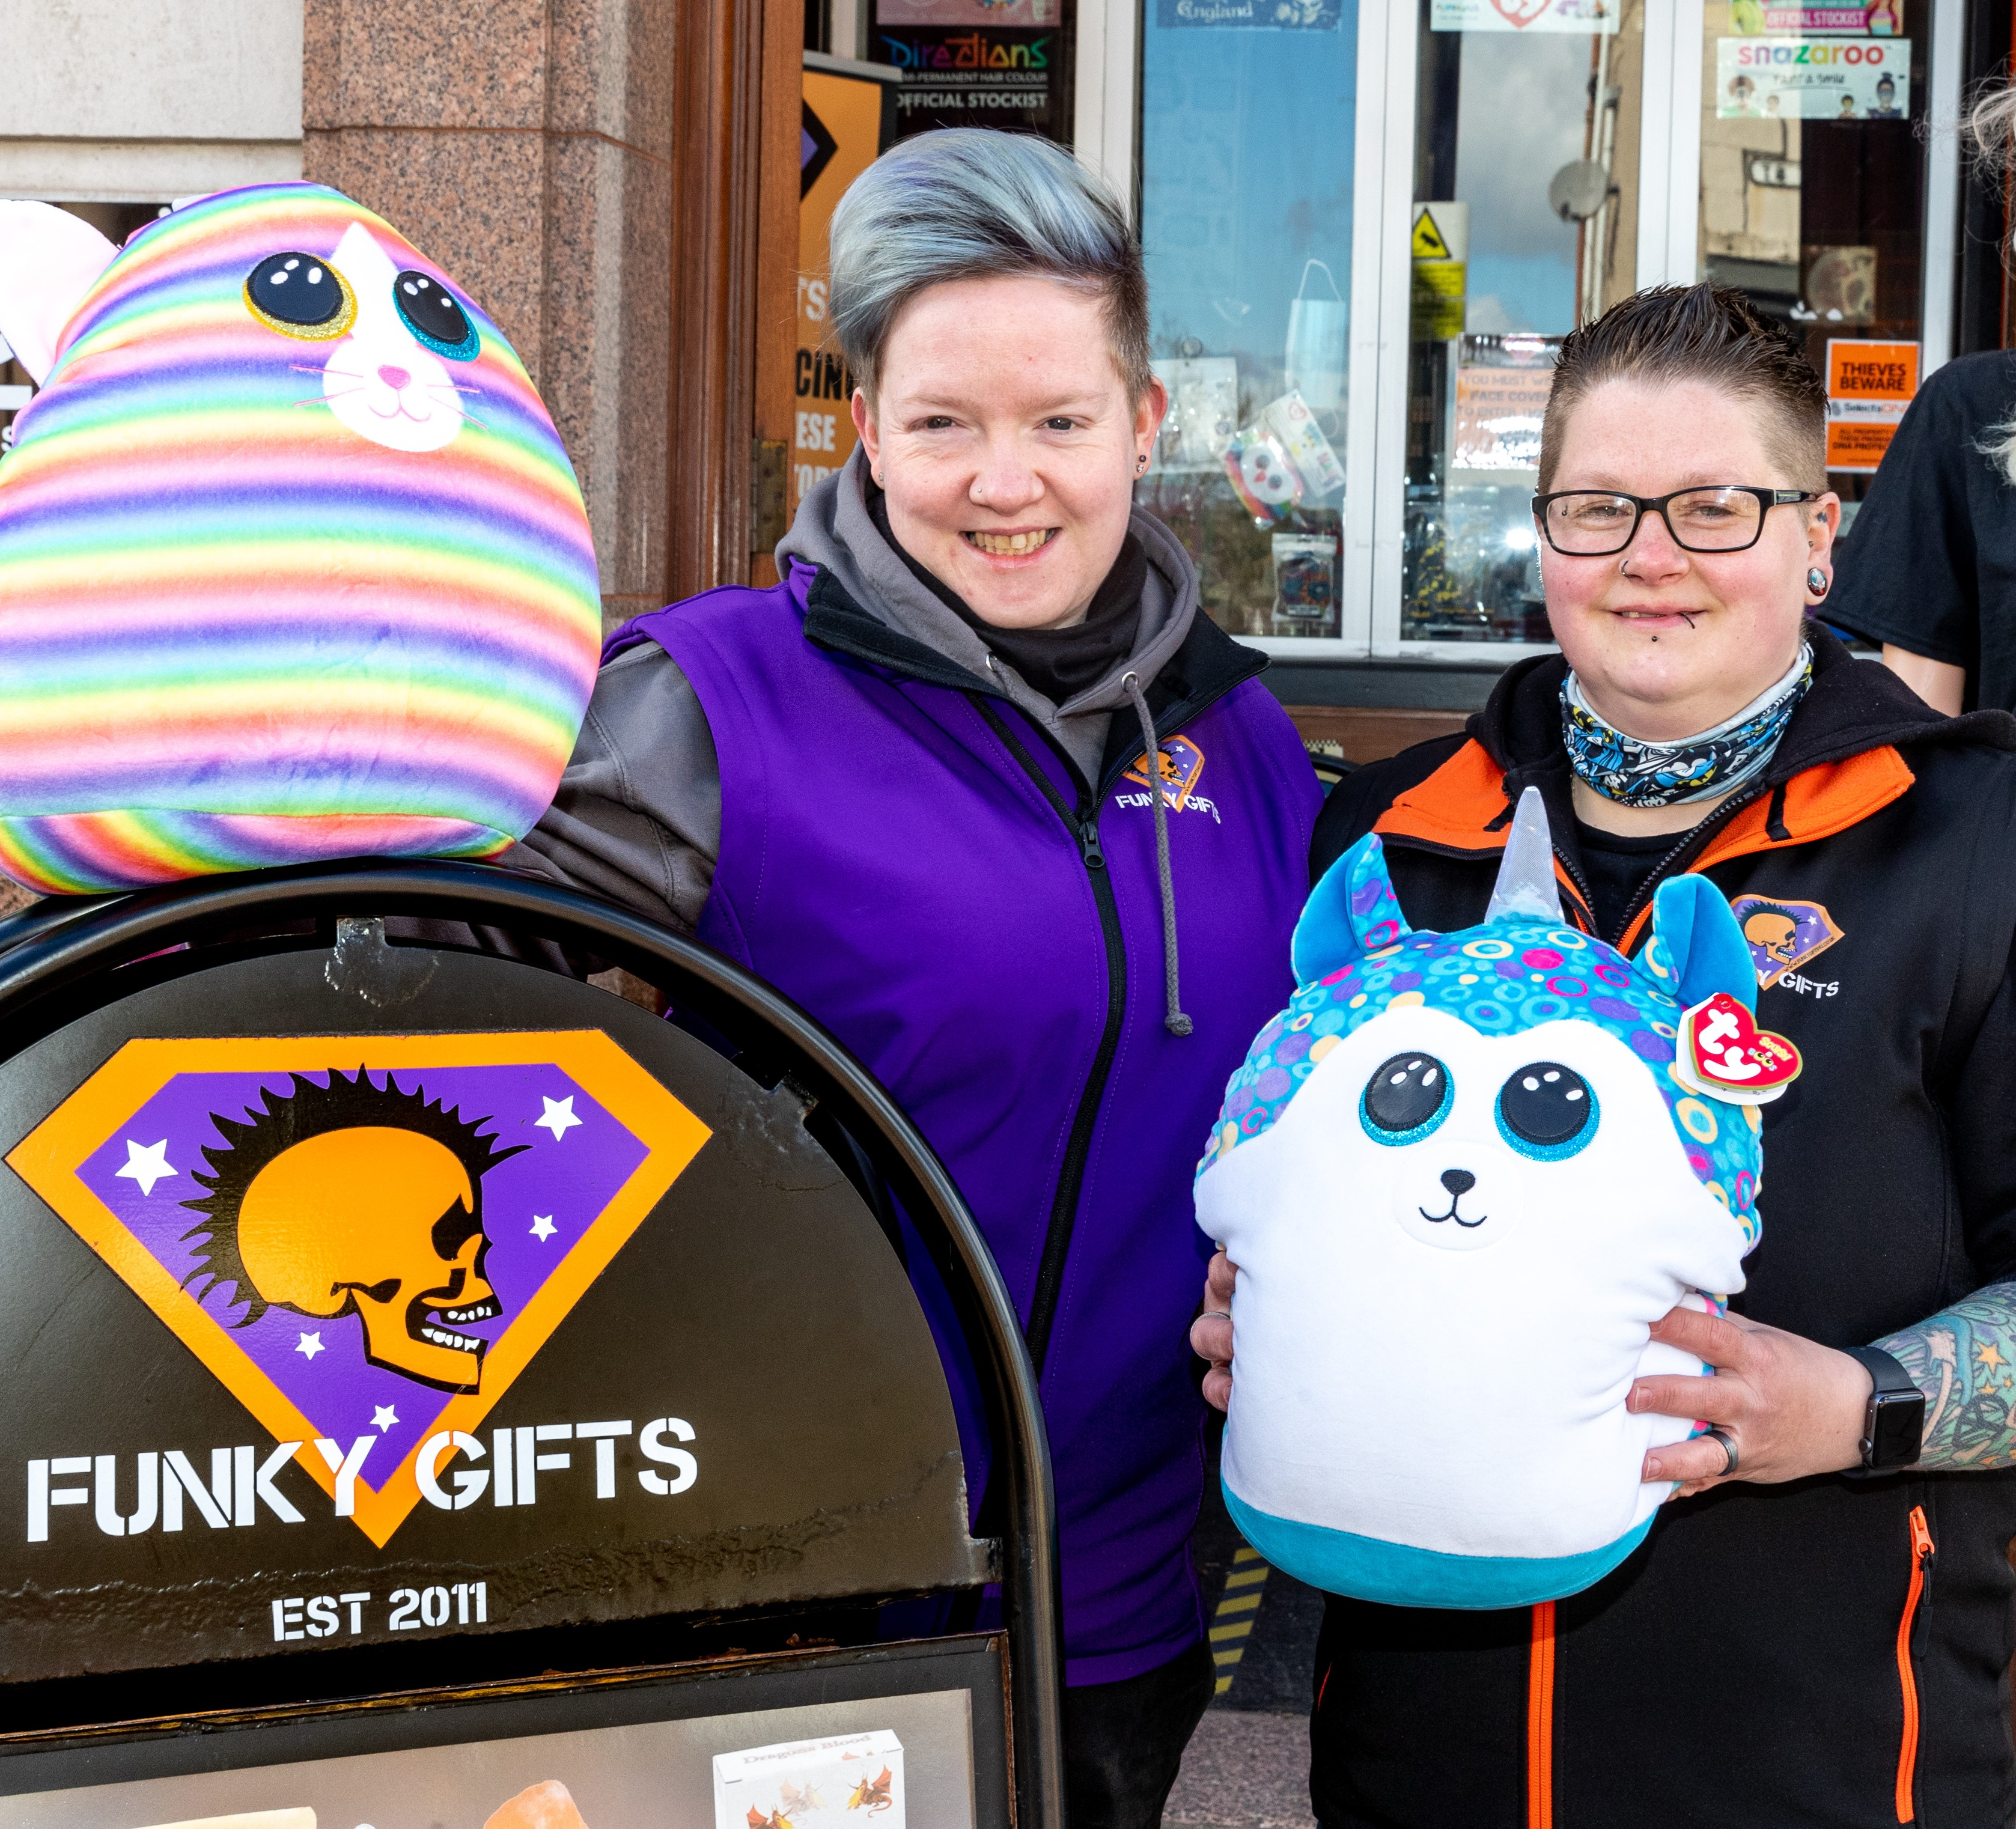 Funky Gifts to celebrate 10-year anniversary thanks to grant funding